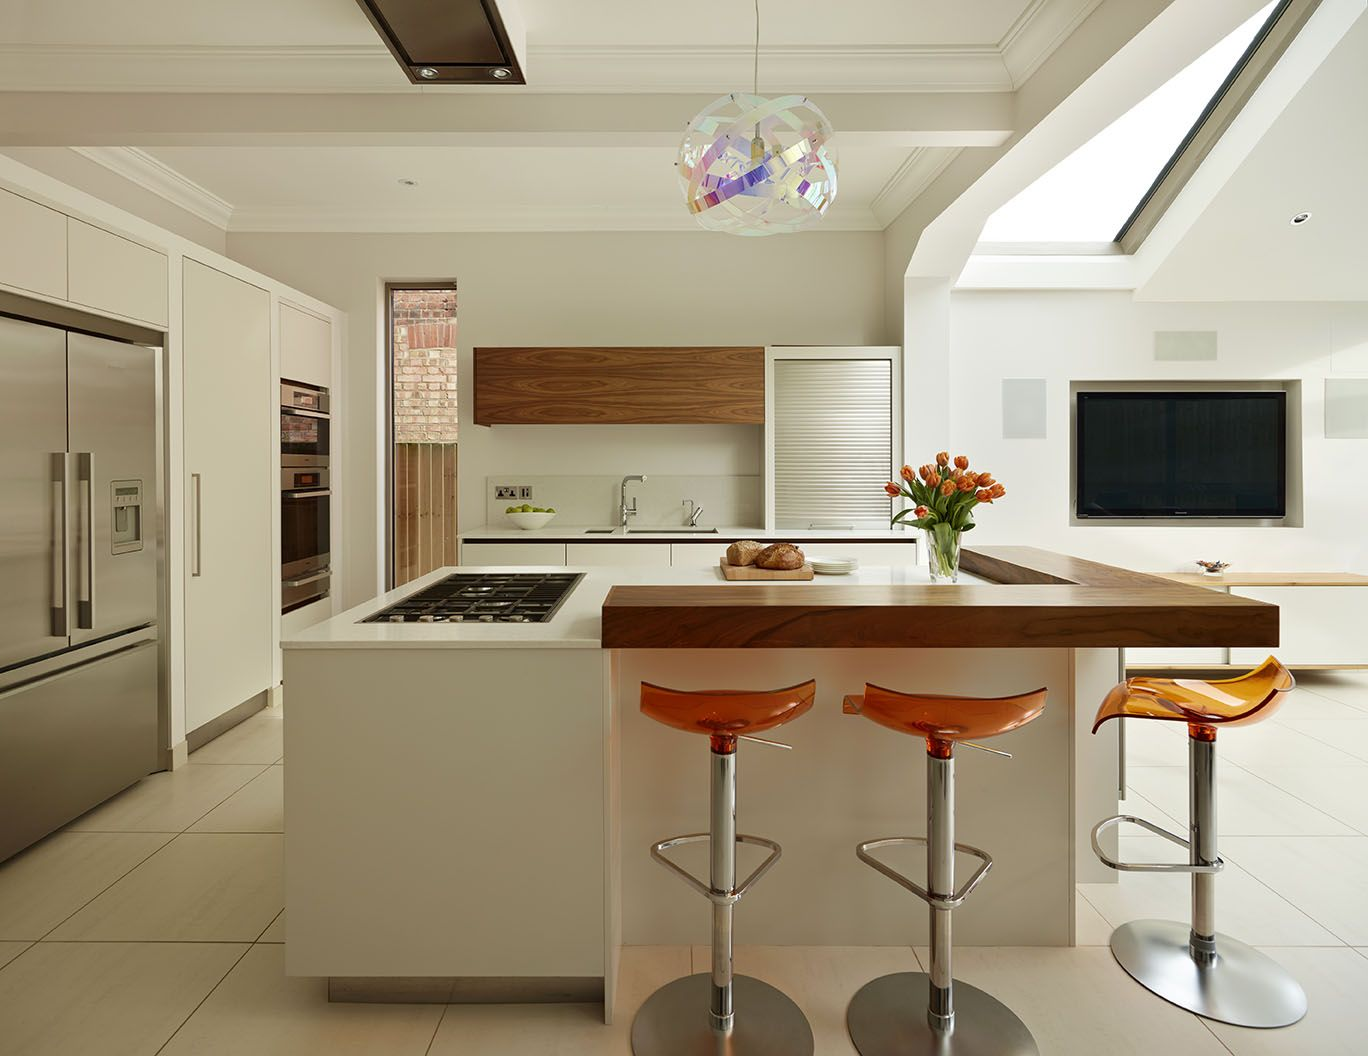 White Lacquer Urbo Bespoke Kitchen Island With Walnut Breakfast Bar In  Contemporary Style By Roundhouse